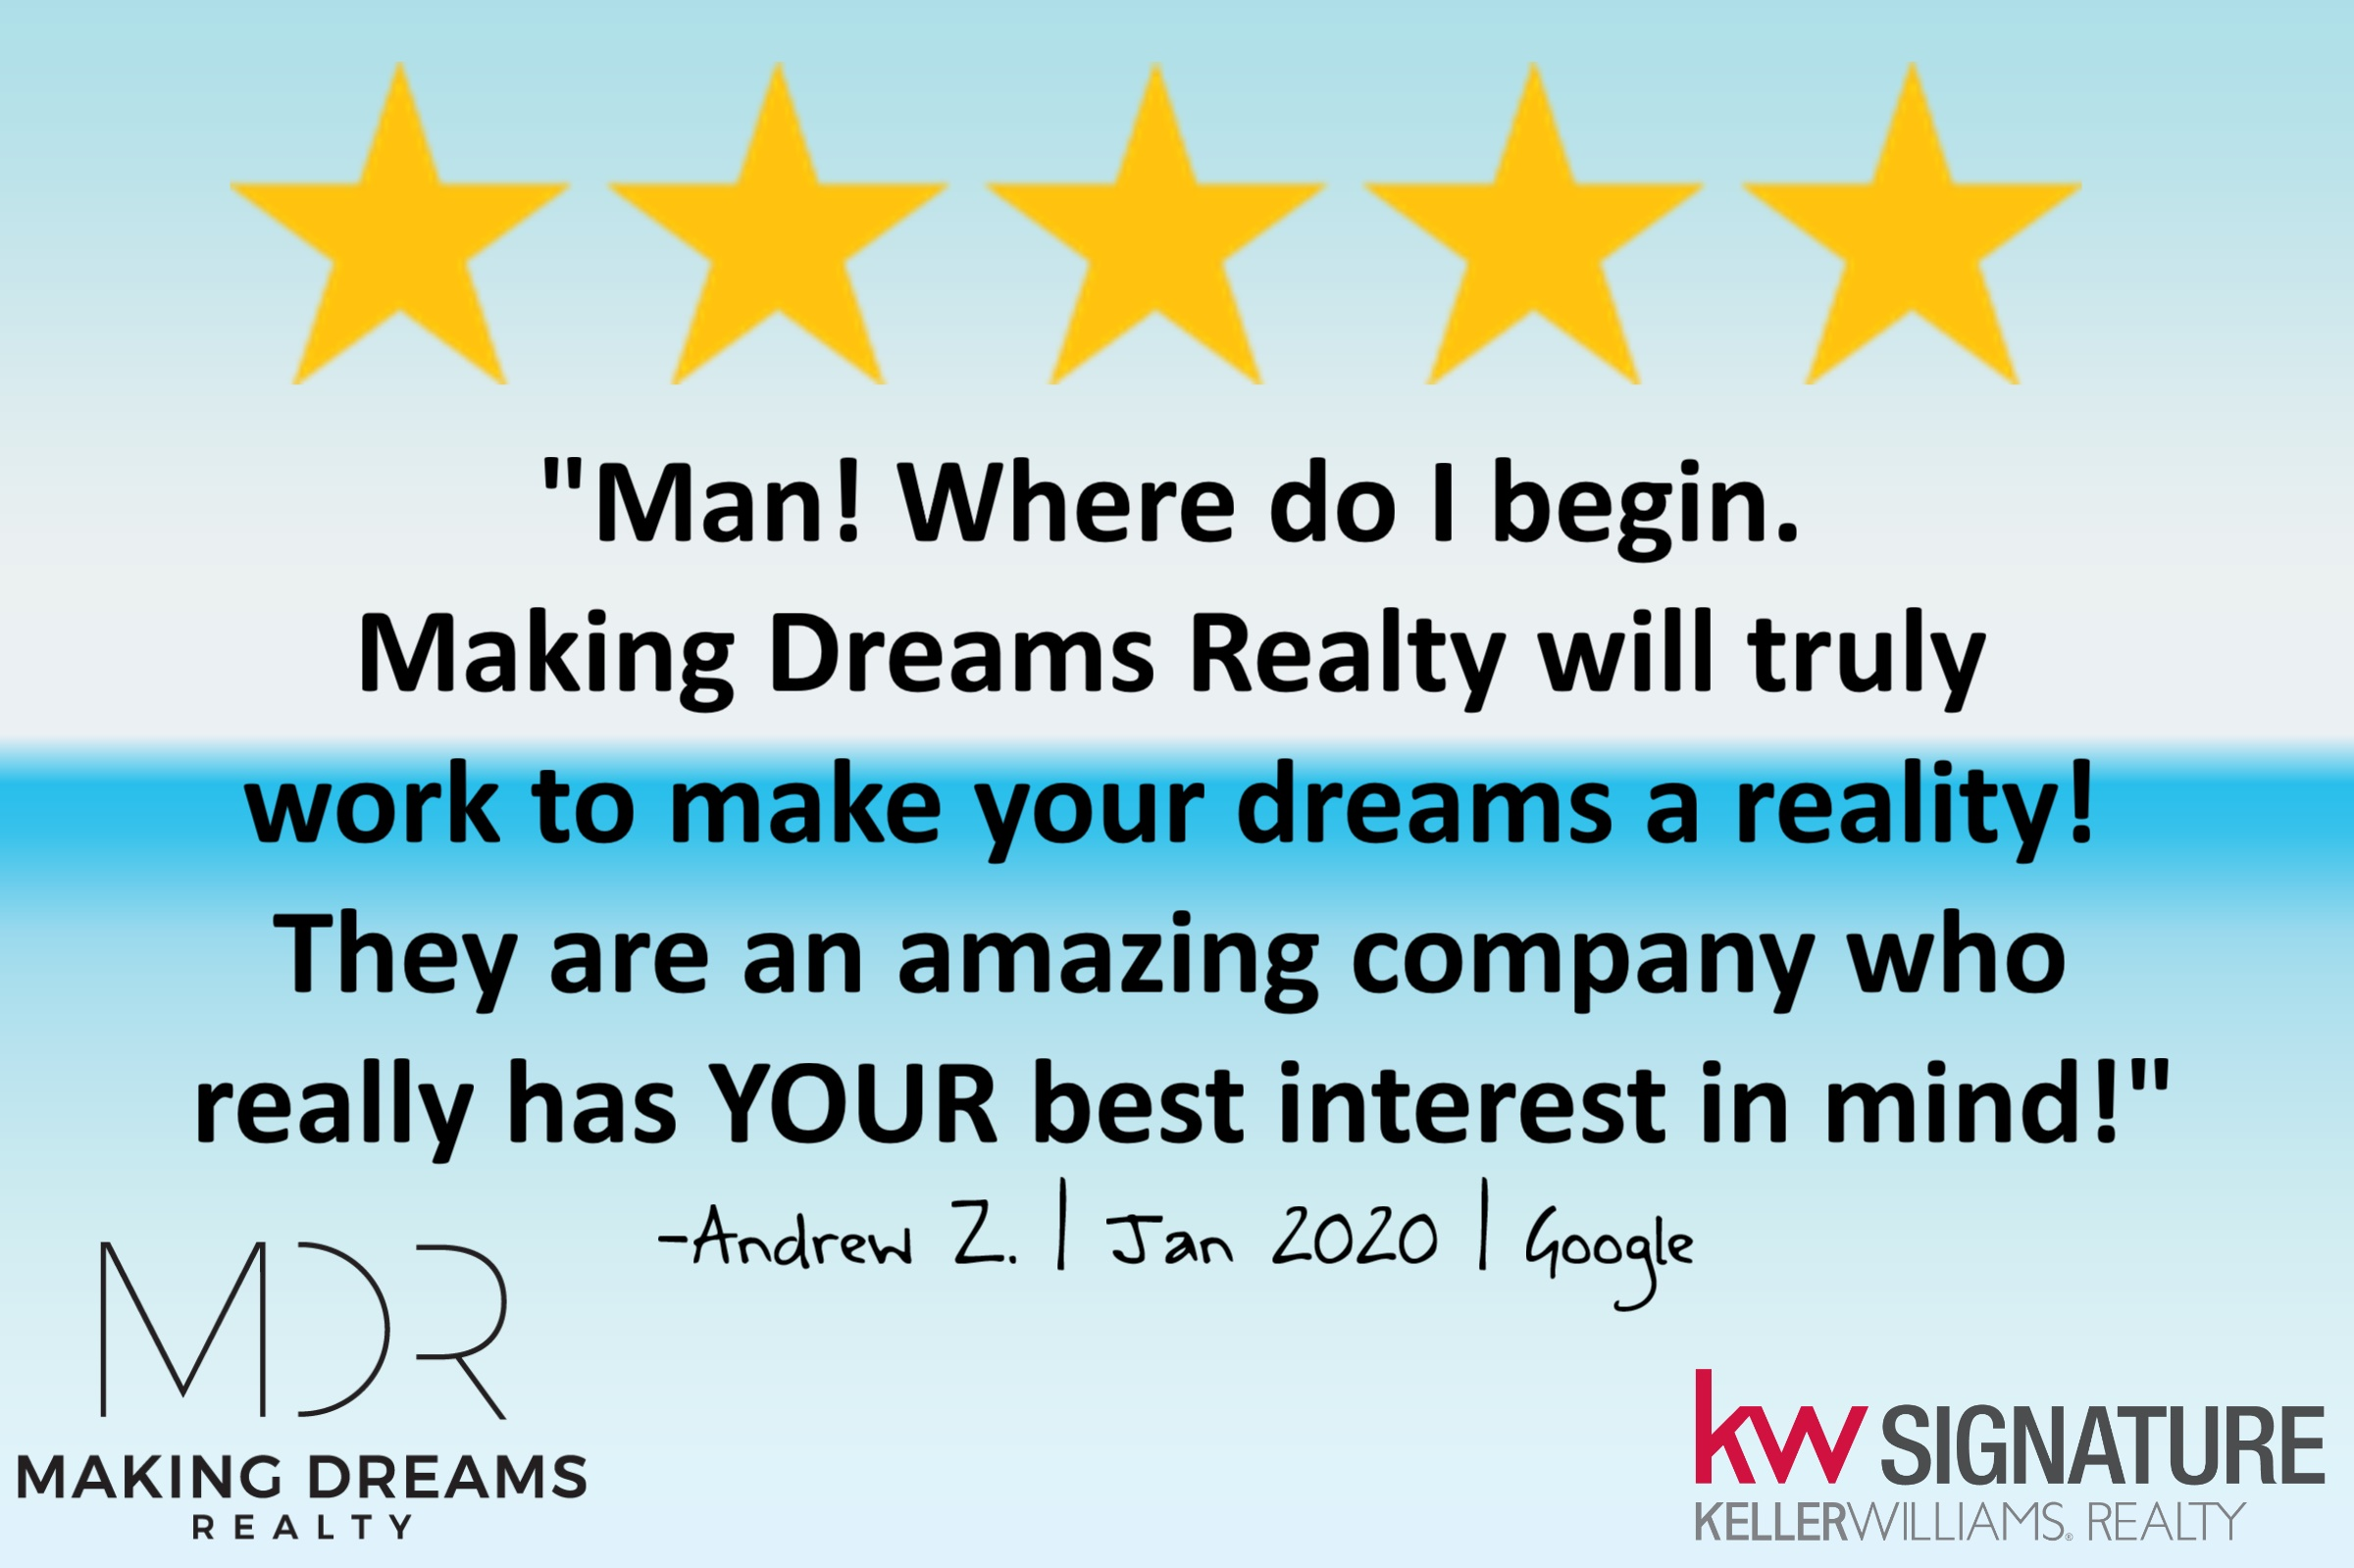 5 star review for the MAKING DREAMS Realty Team